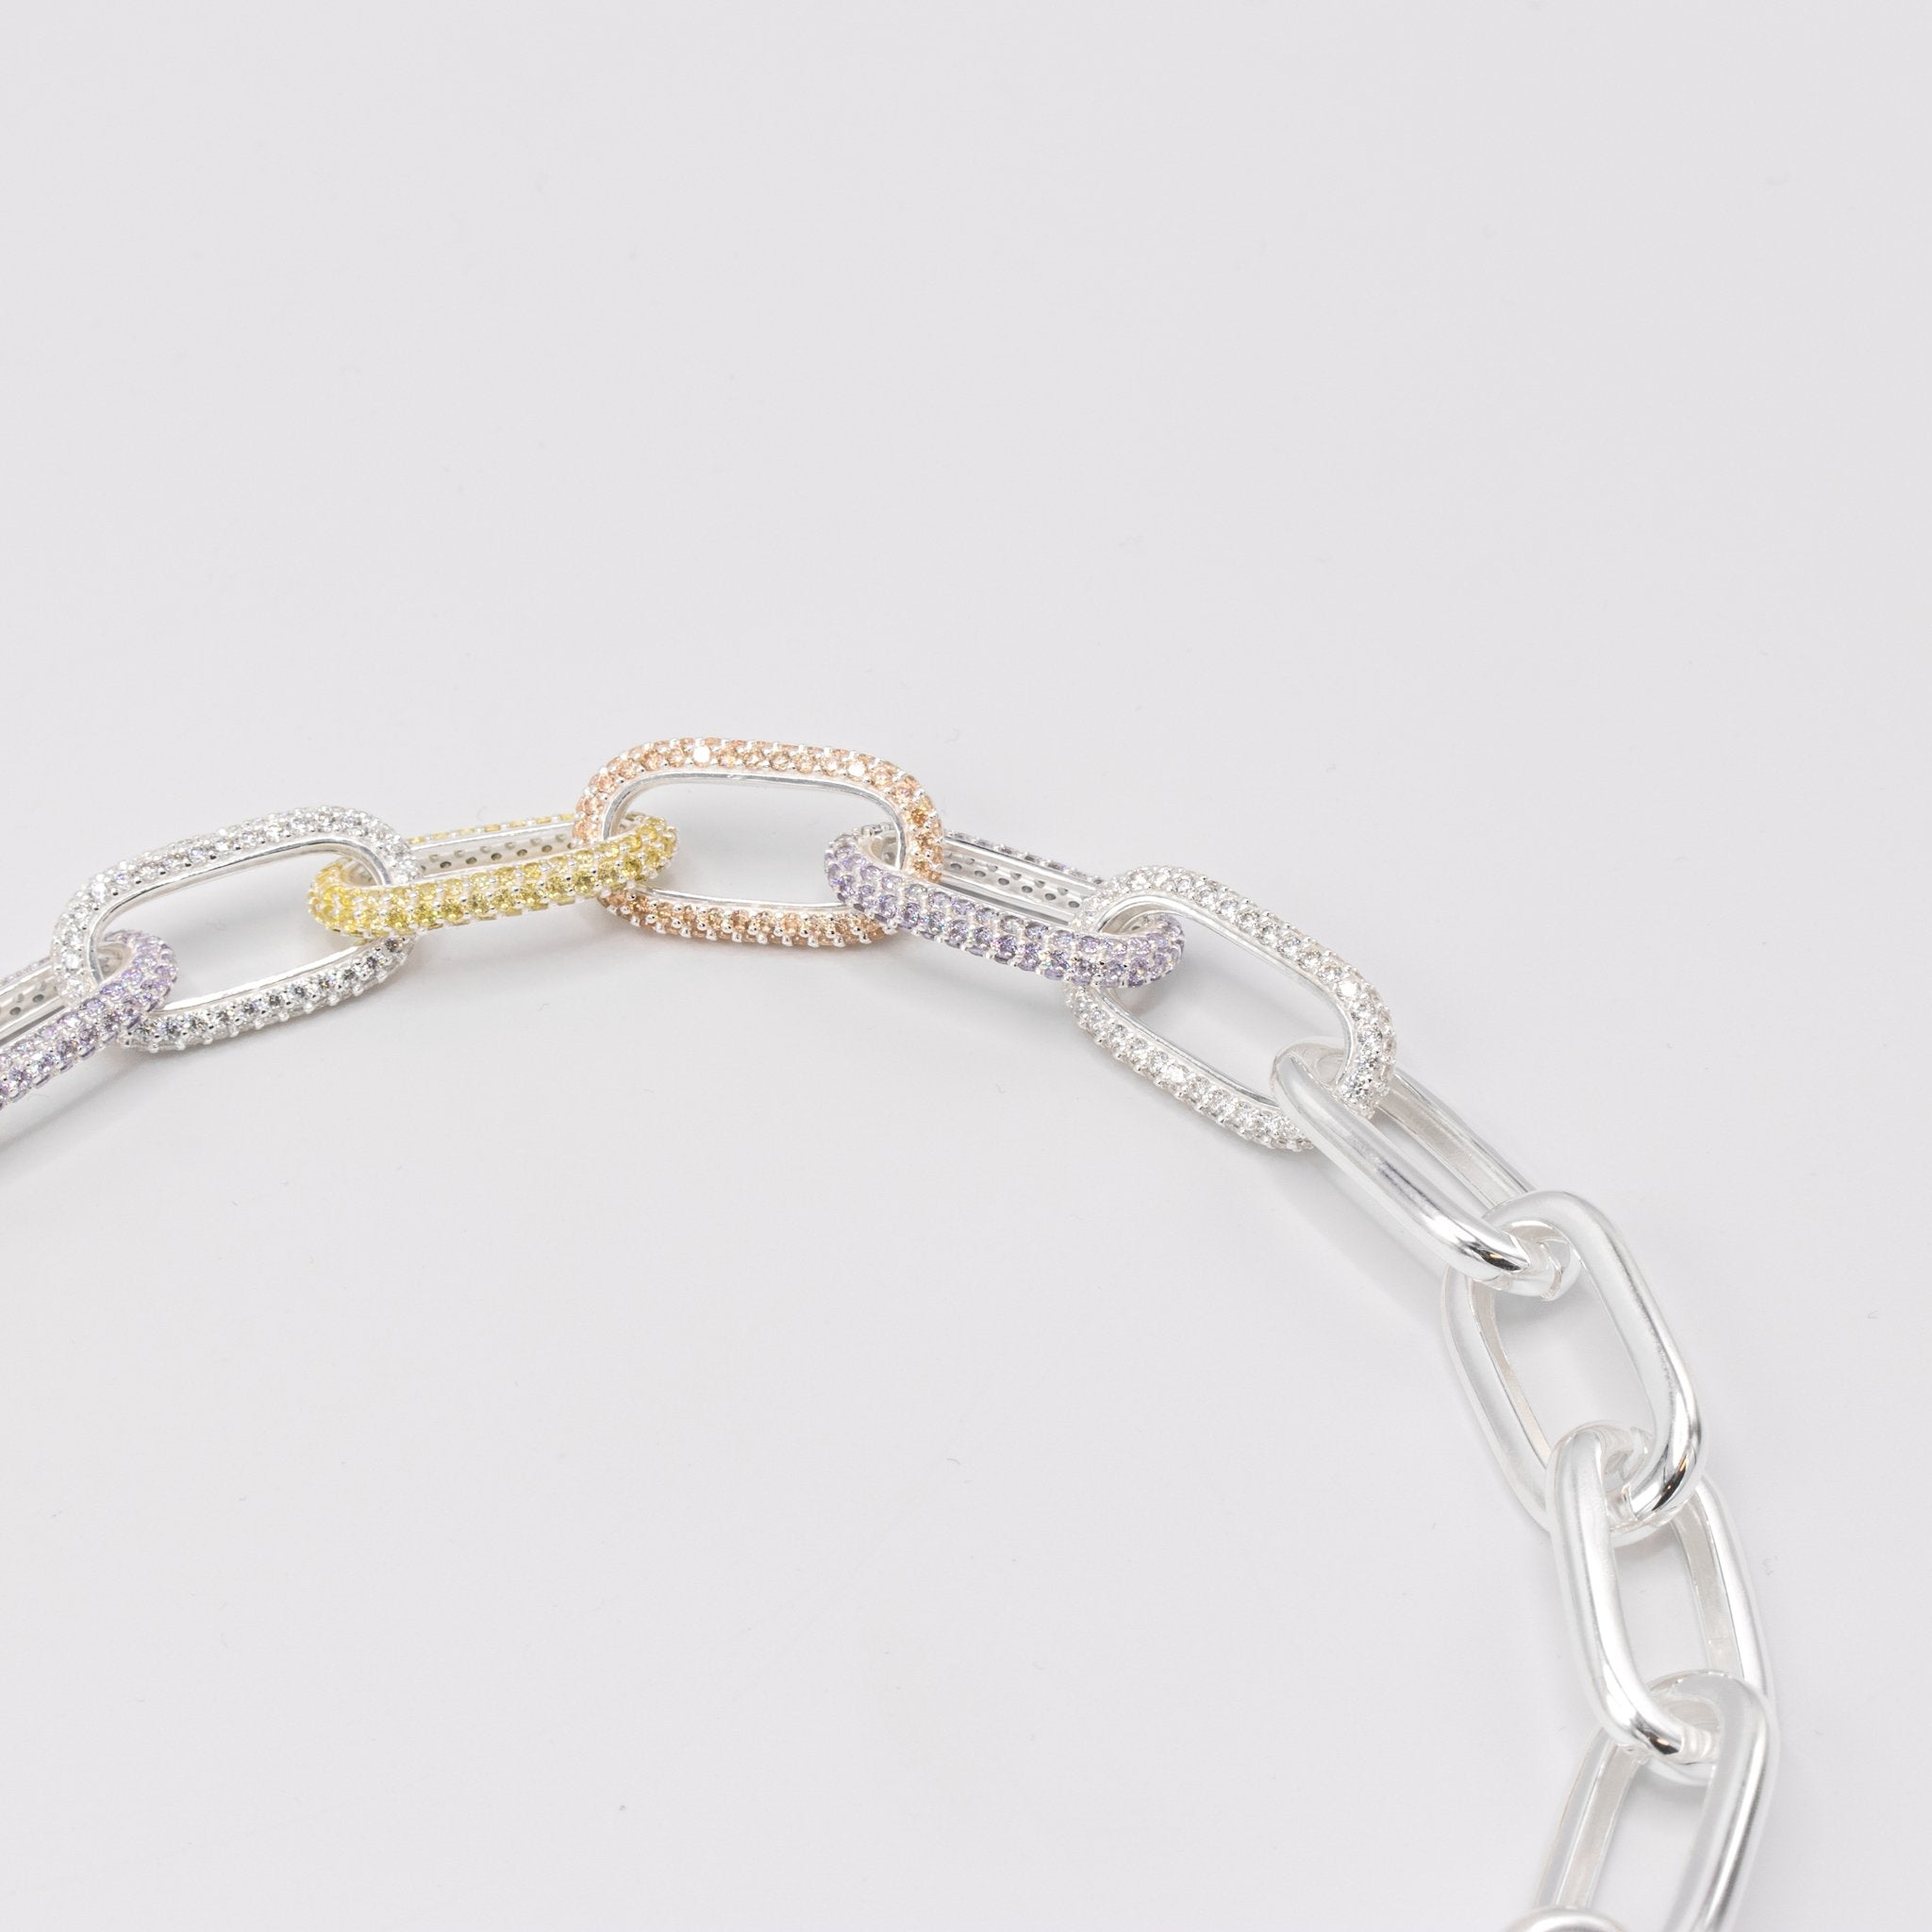 Cable Chain Colored (925)